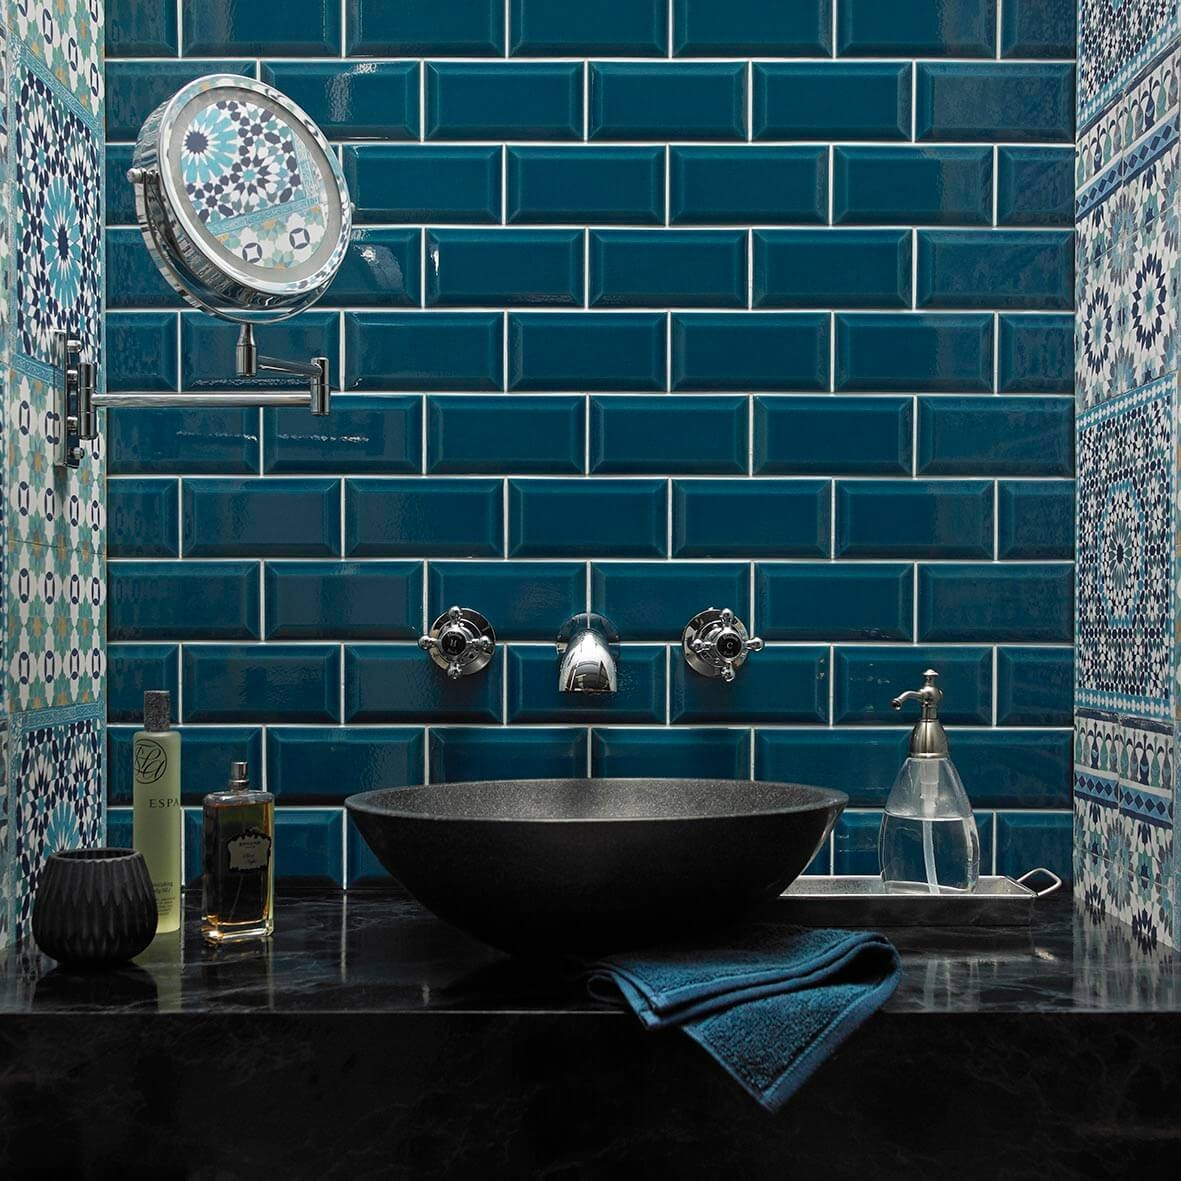 Bevel Teal Victoria Baths Tile from Tile Giant